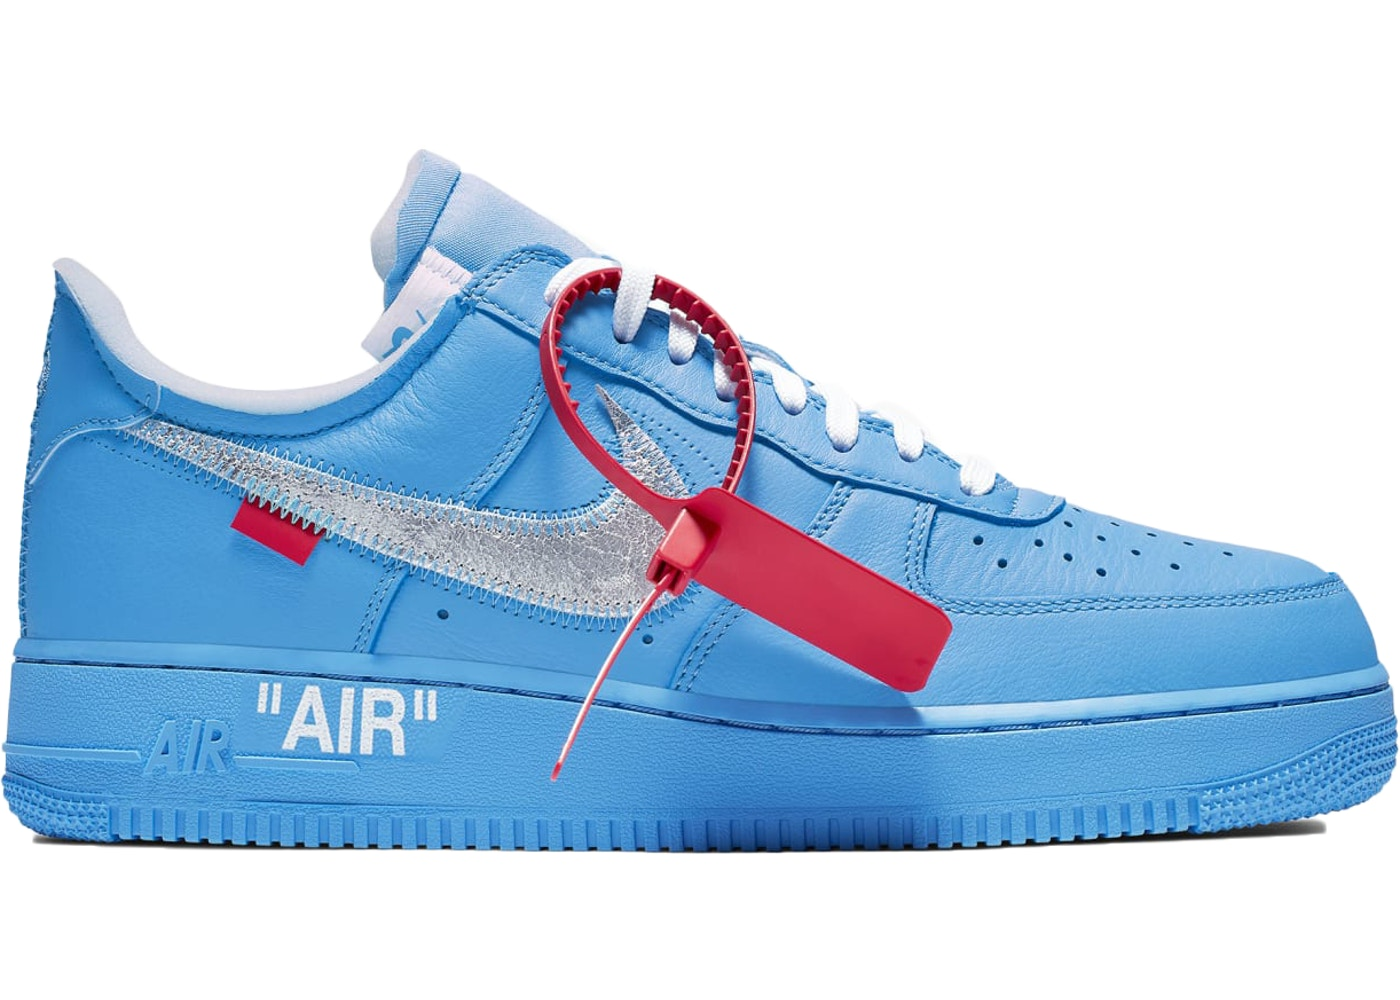 Air Force 1 Low Off White MCA University Blue . BuySell on